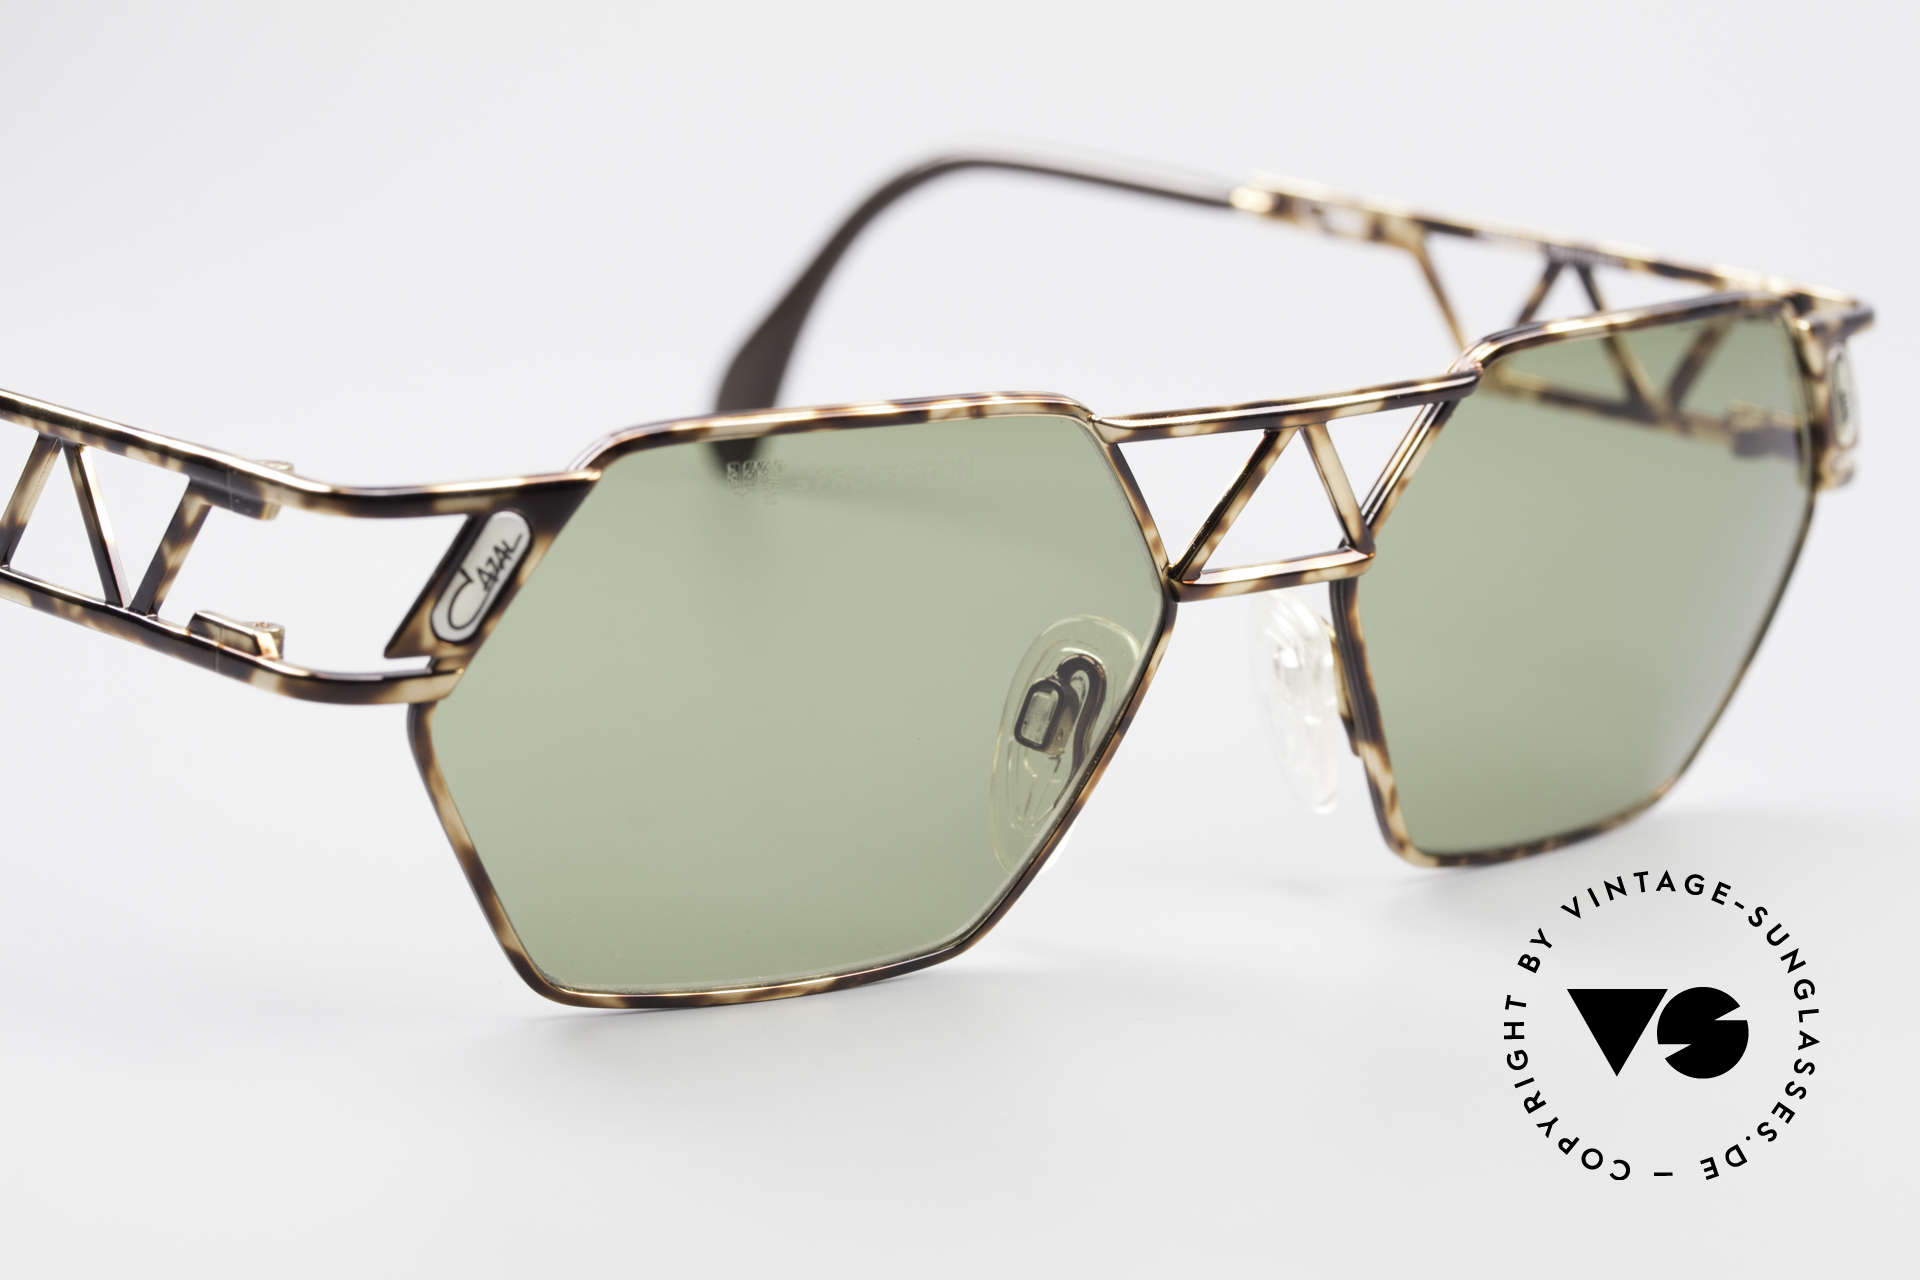 Cazal 960 Vintage Designer Sunglasses, NO retro fashion, but a precious 25 years old ORIGINAL, Made for Men and Women